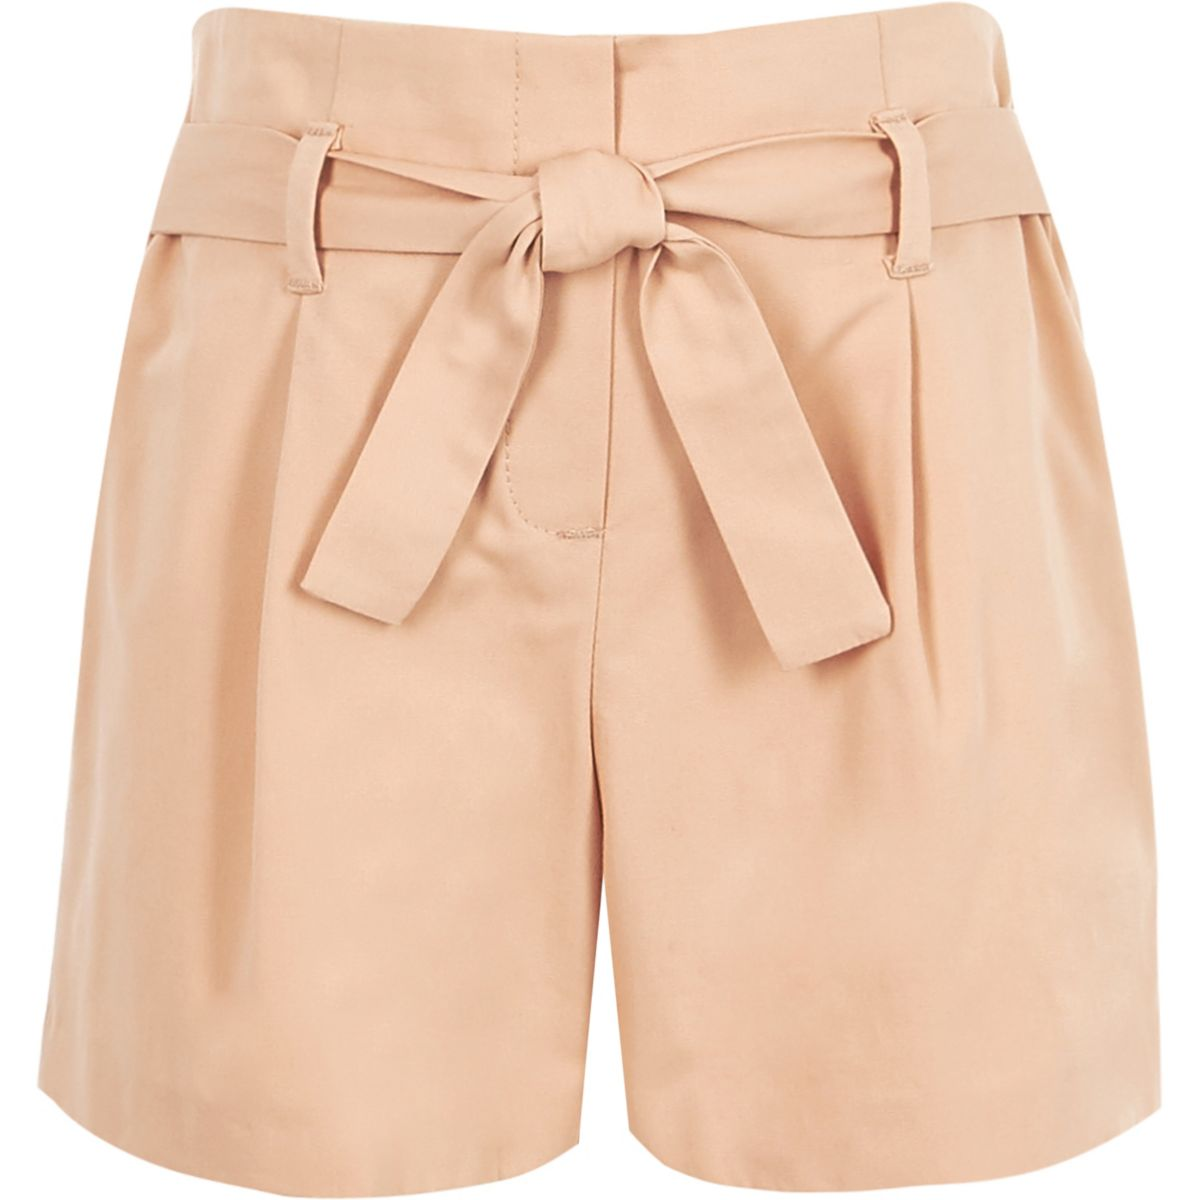 Girls pink poplin tie front shorts